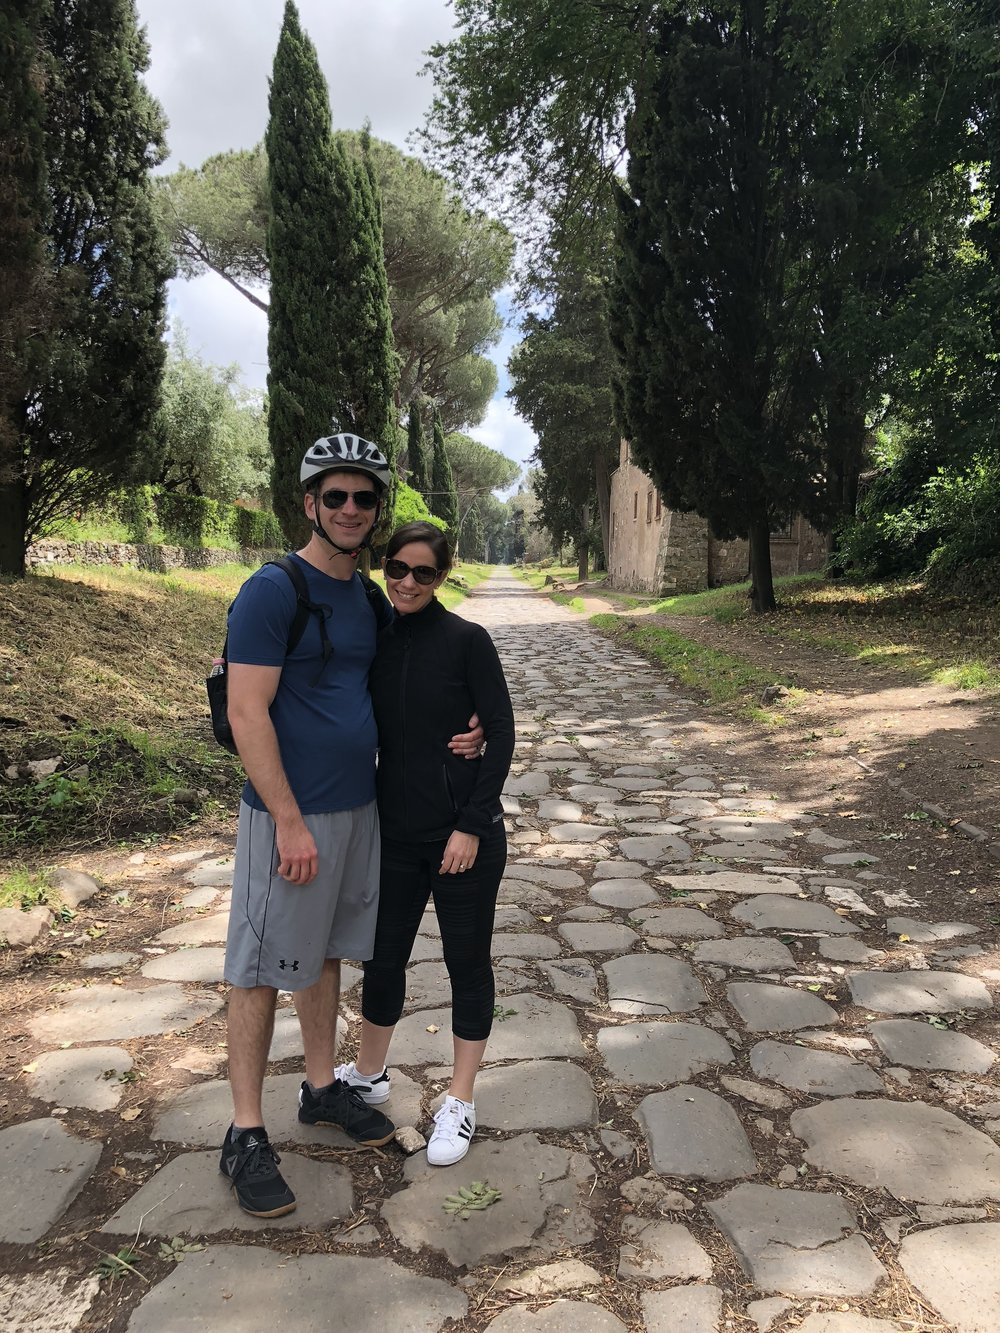 A stop along the Appian Way.